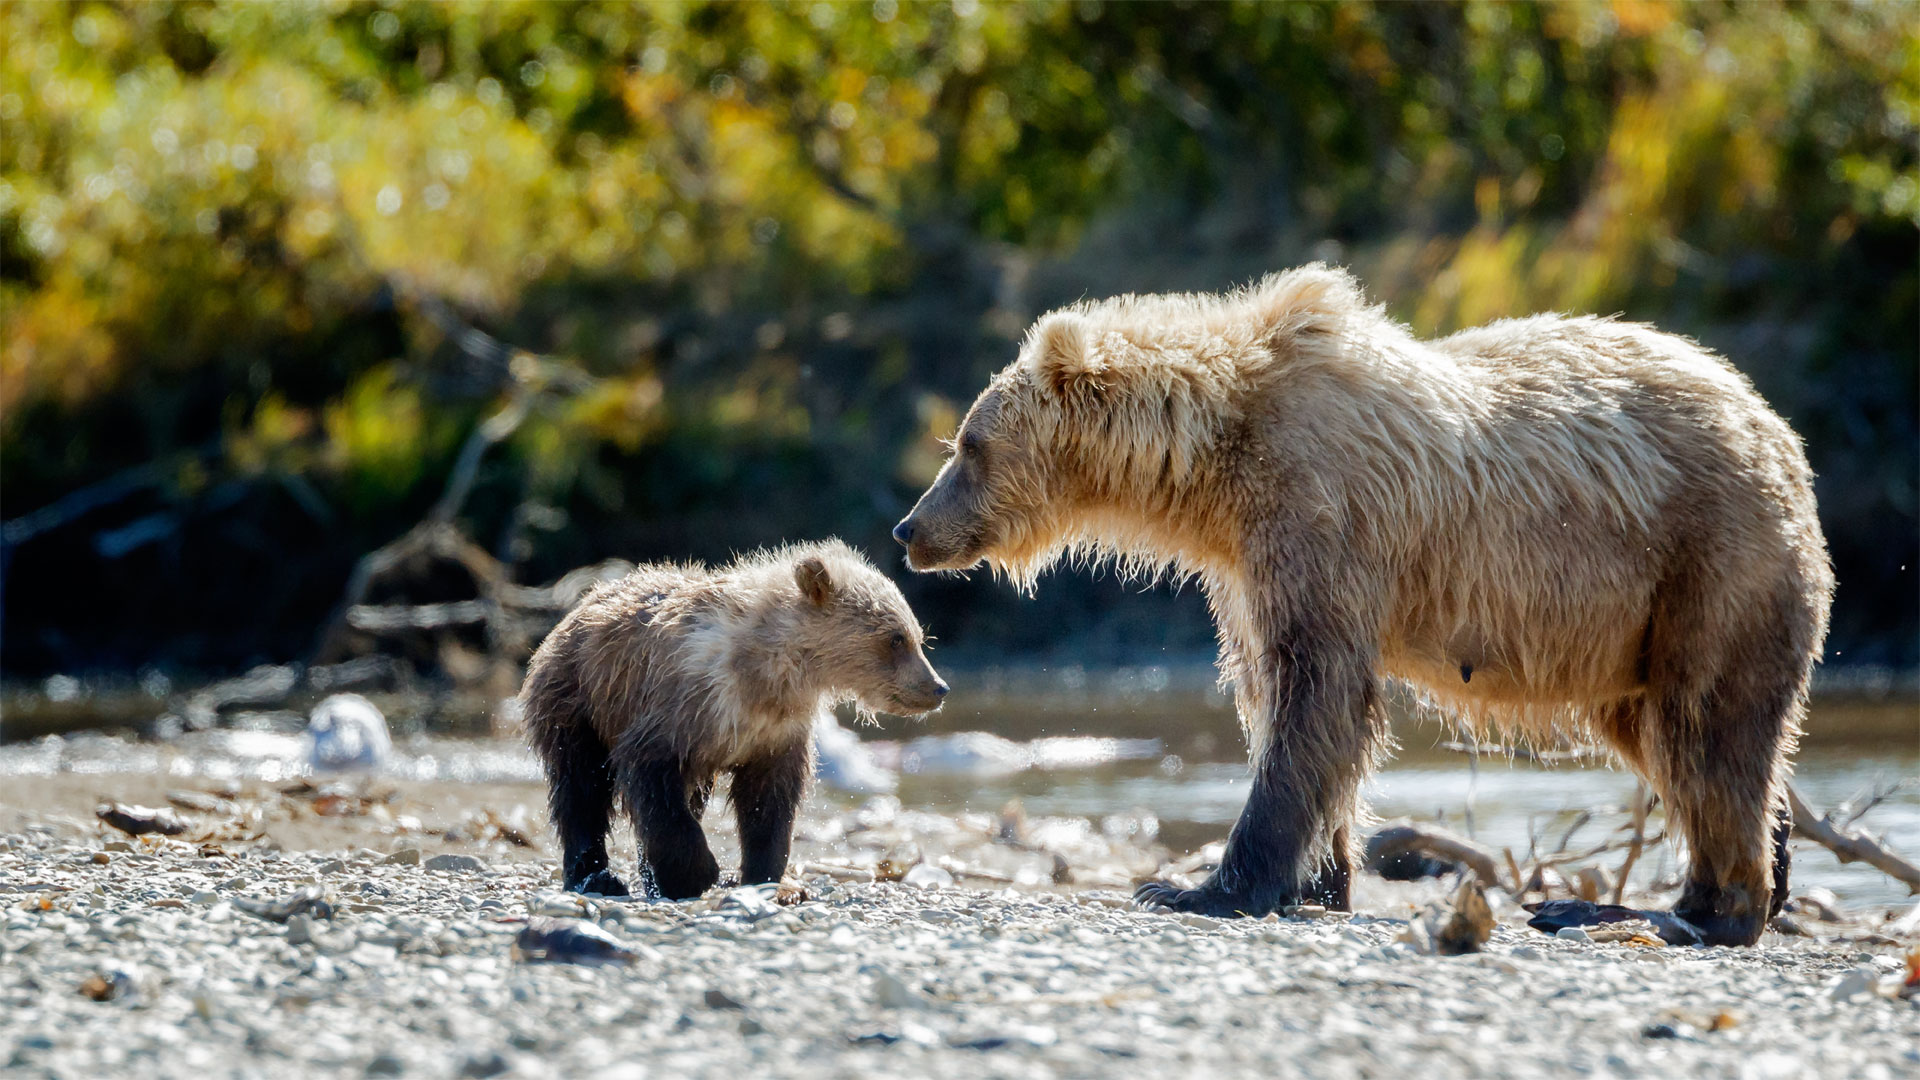 Grizzly Bear Diet And Food